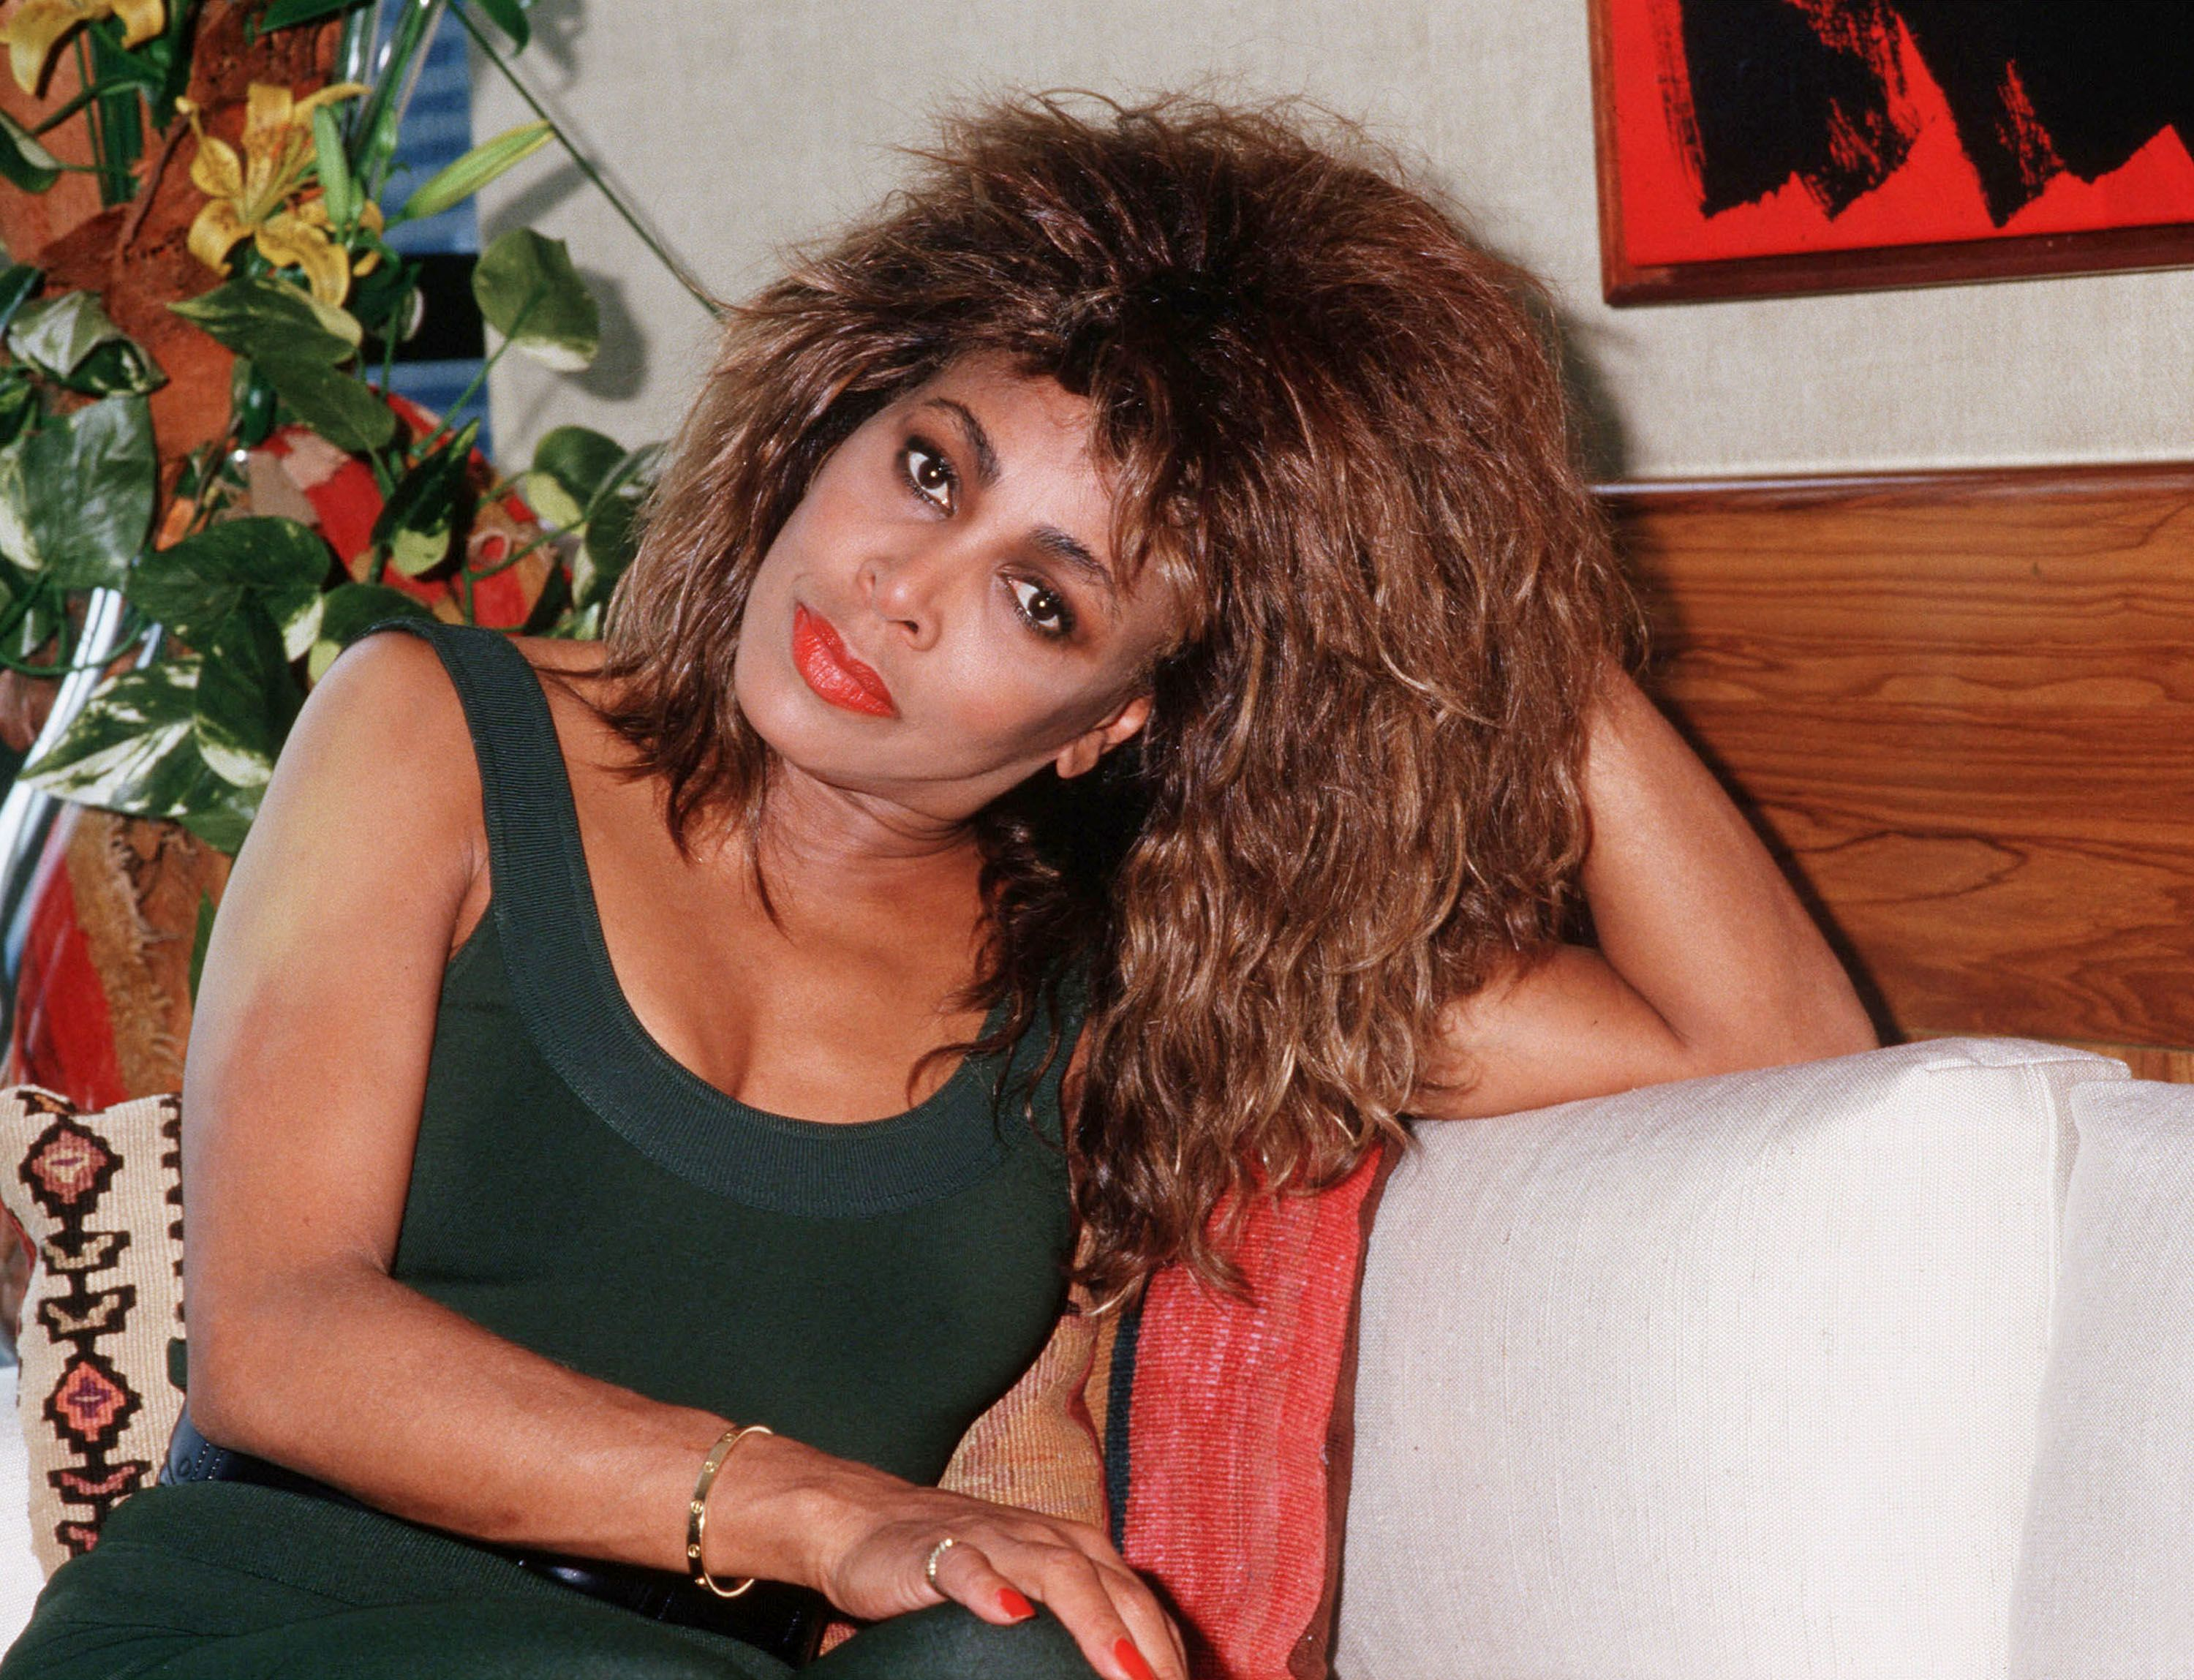 Tina Turner in 1988 in Rio de Janeiro, Brazil | Source: Getty Images